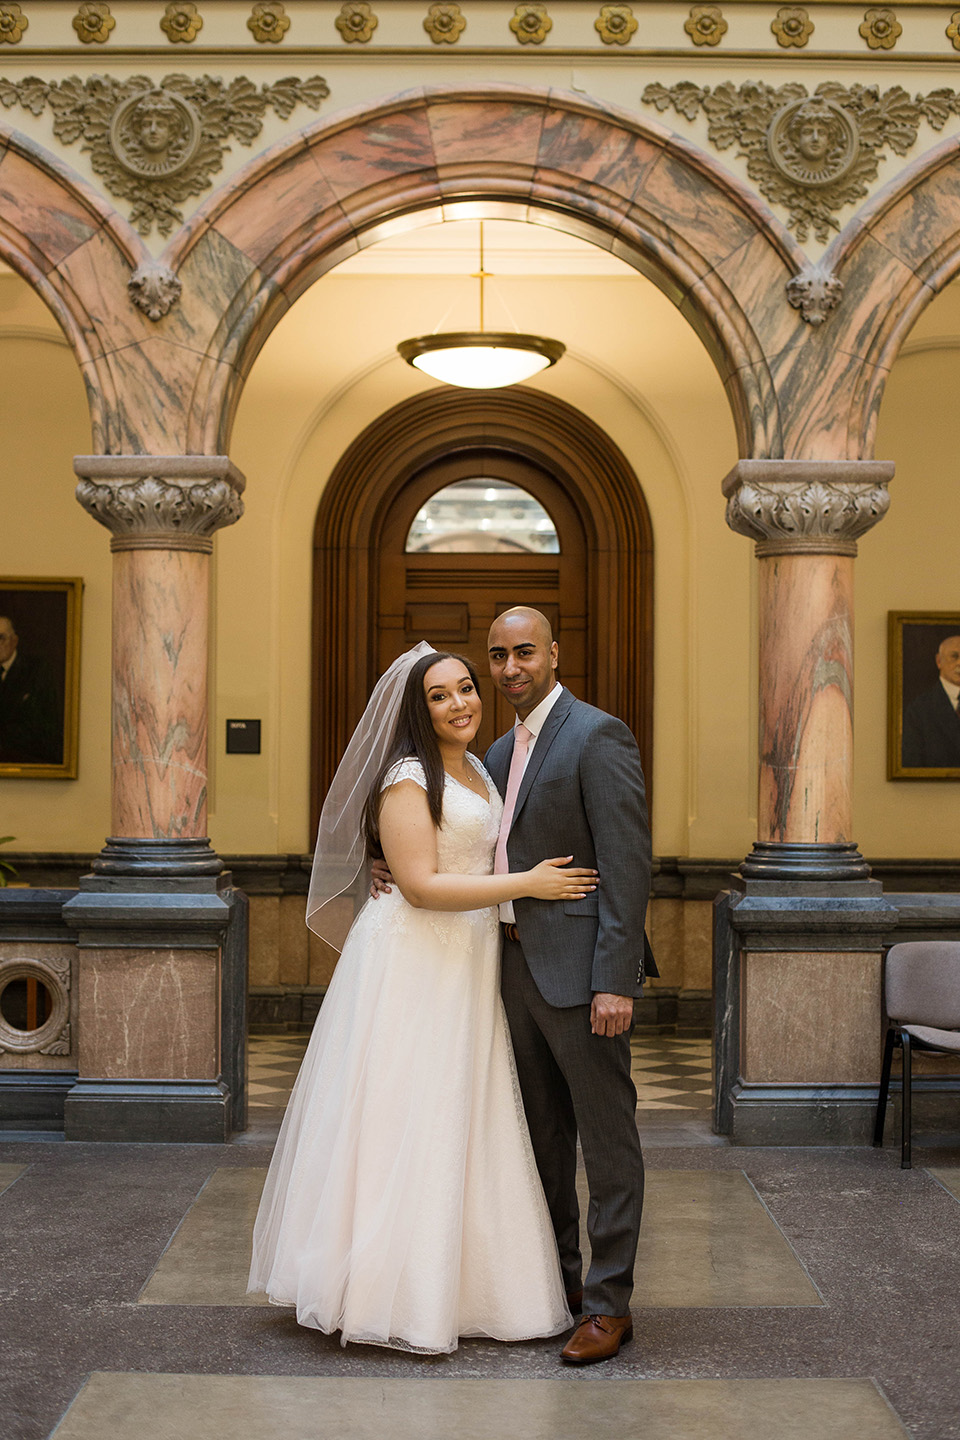 courthouse elopement in Cincinnati OH, bride and groom photo